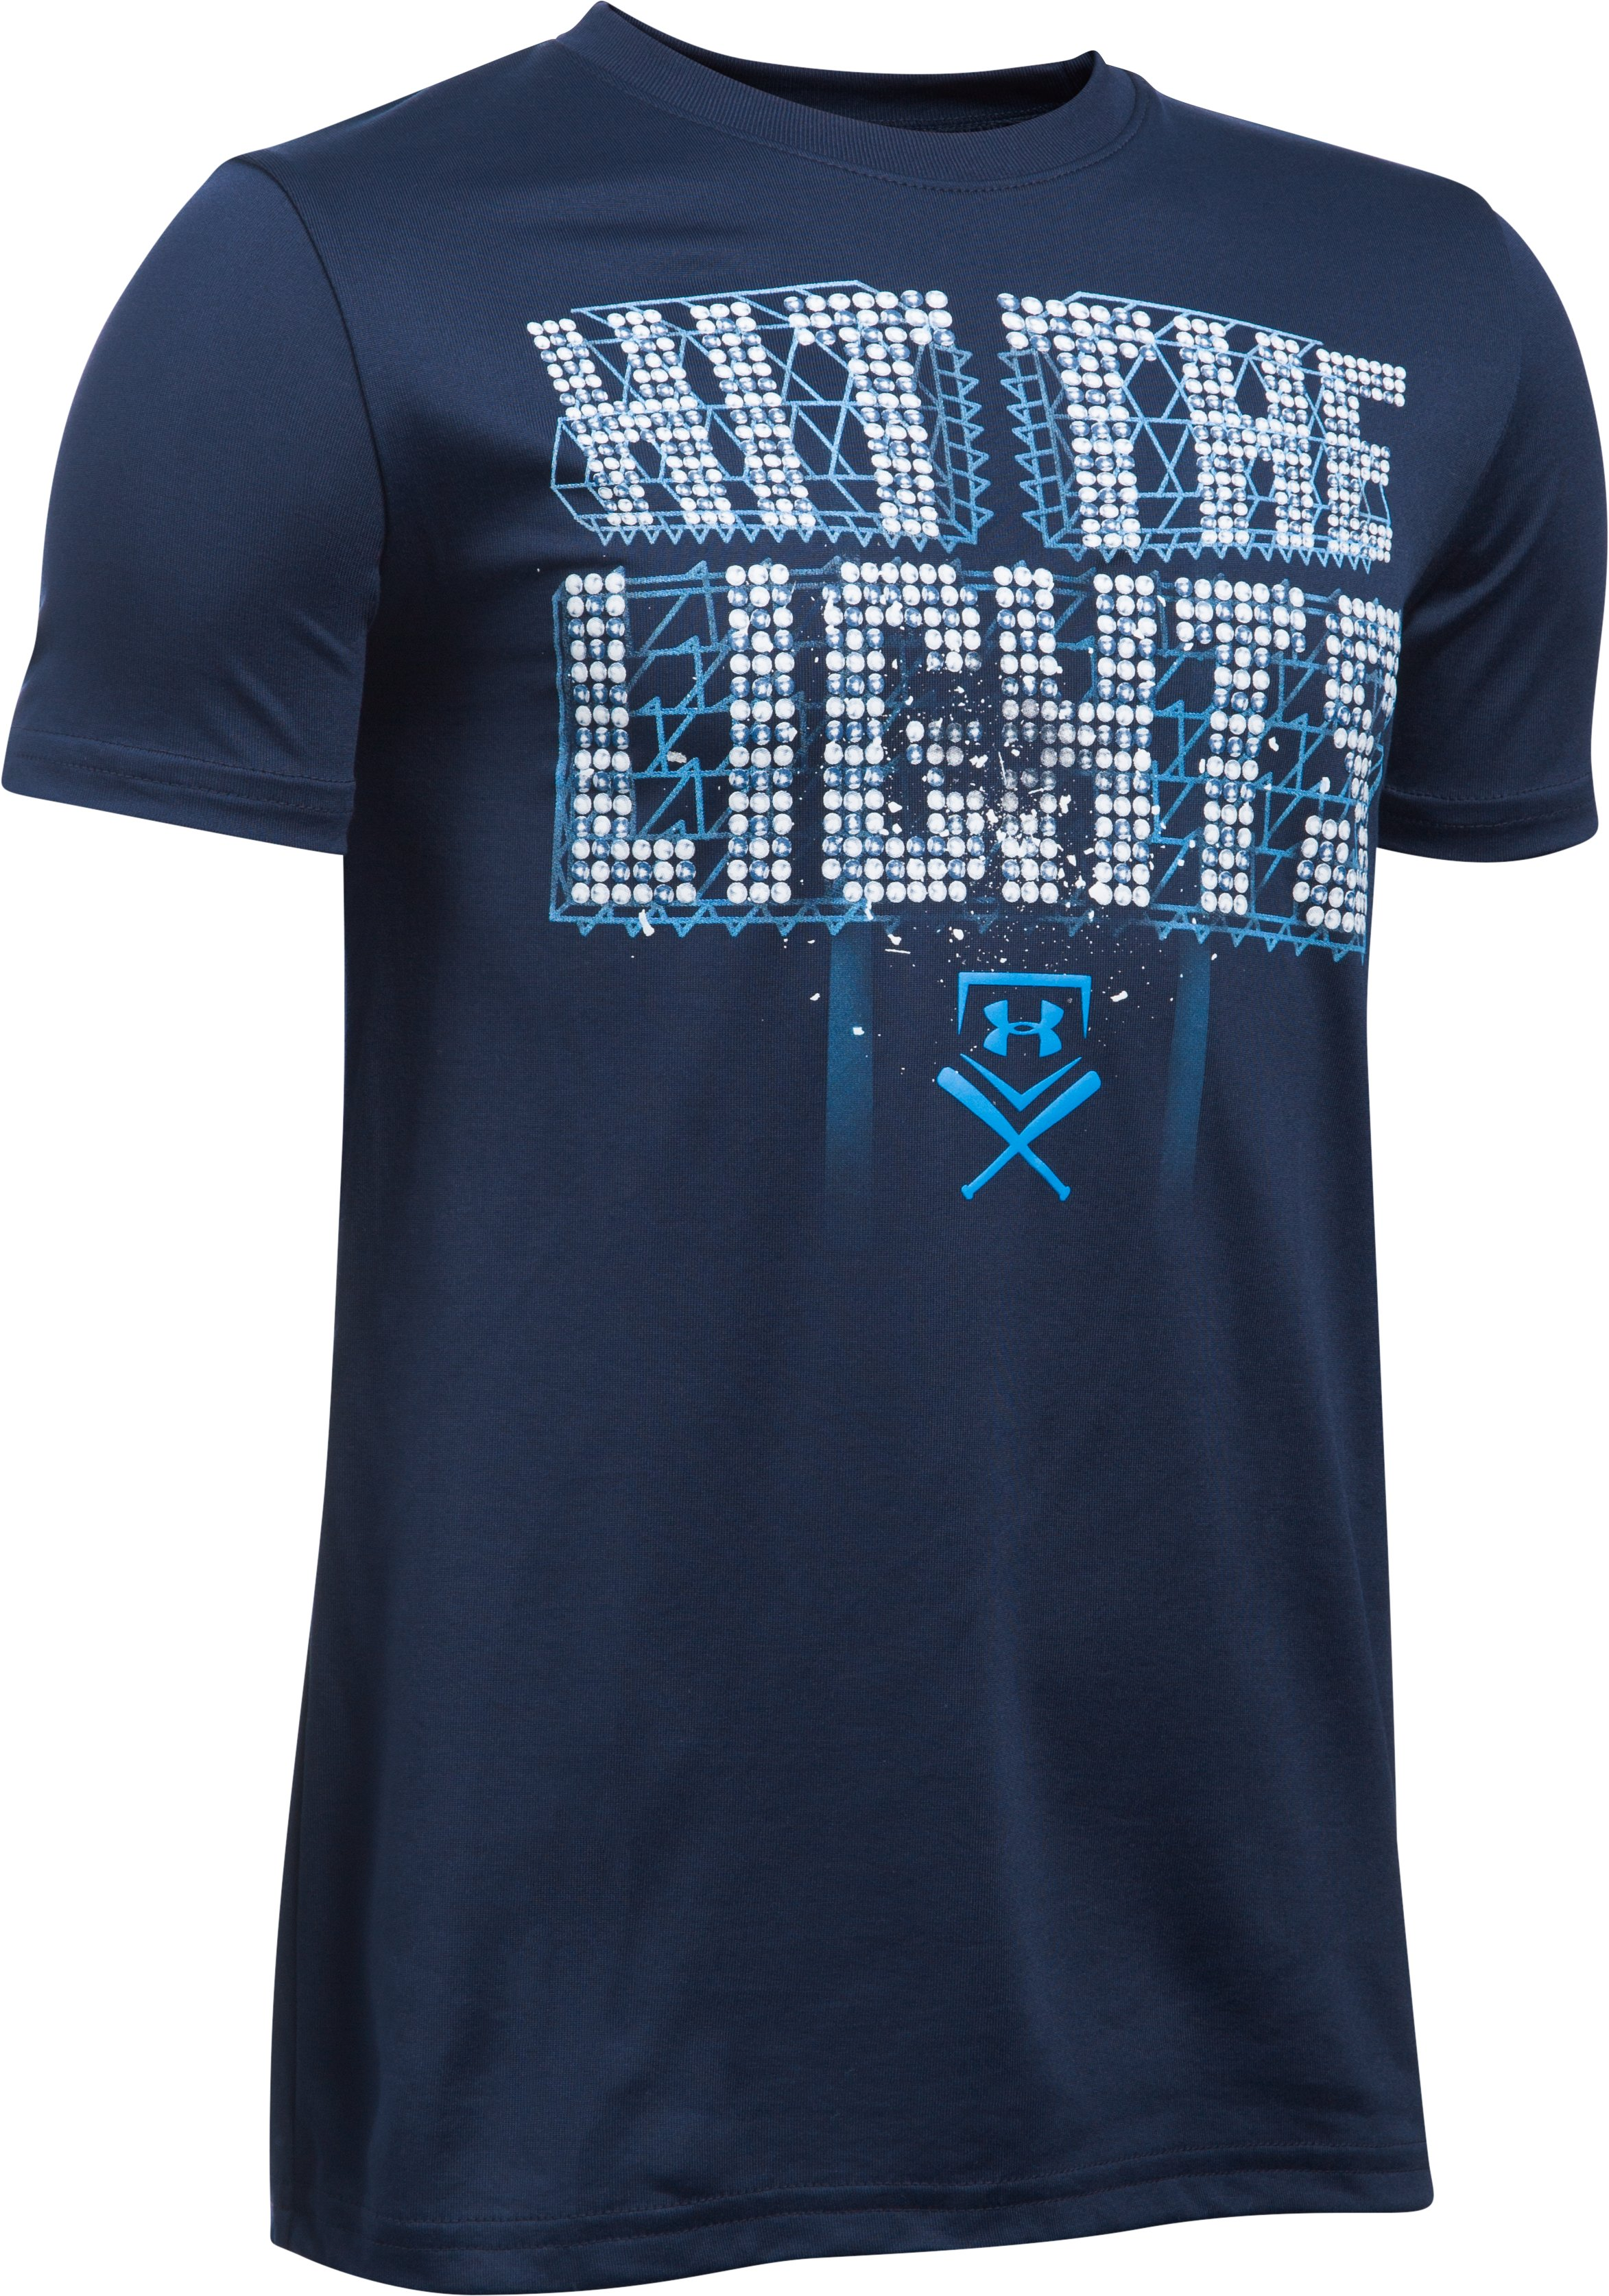 Boys' UA Hit The Lights Short Sleeve T-Shirt, Midnight Navy